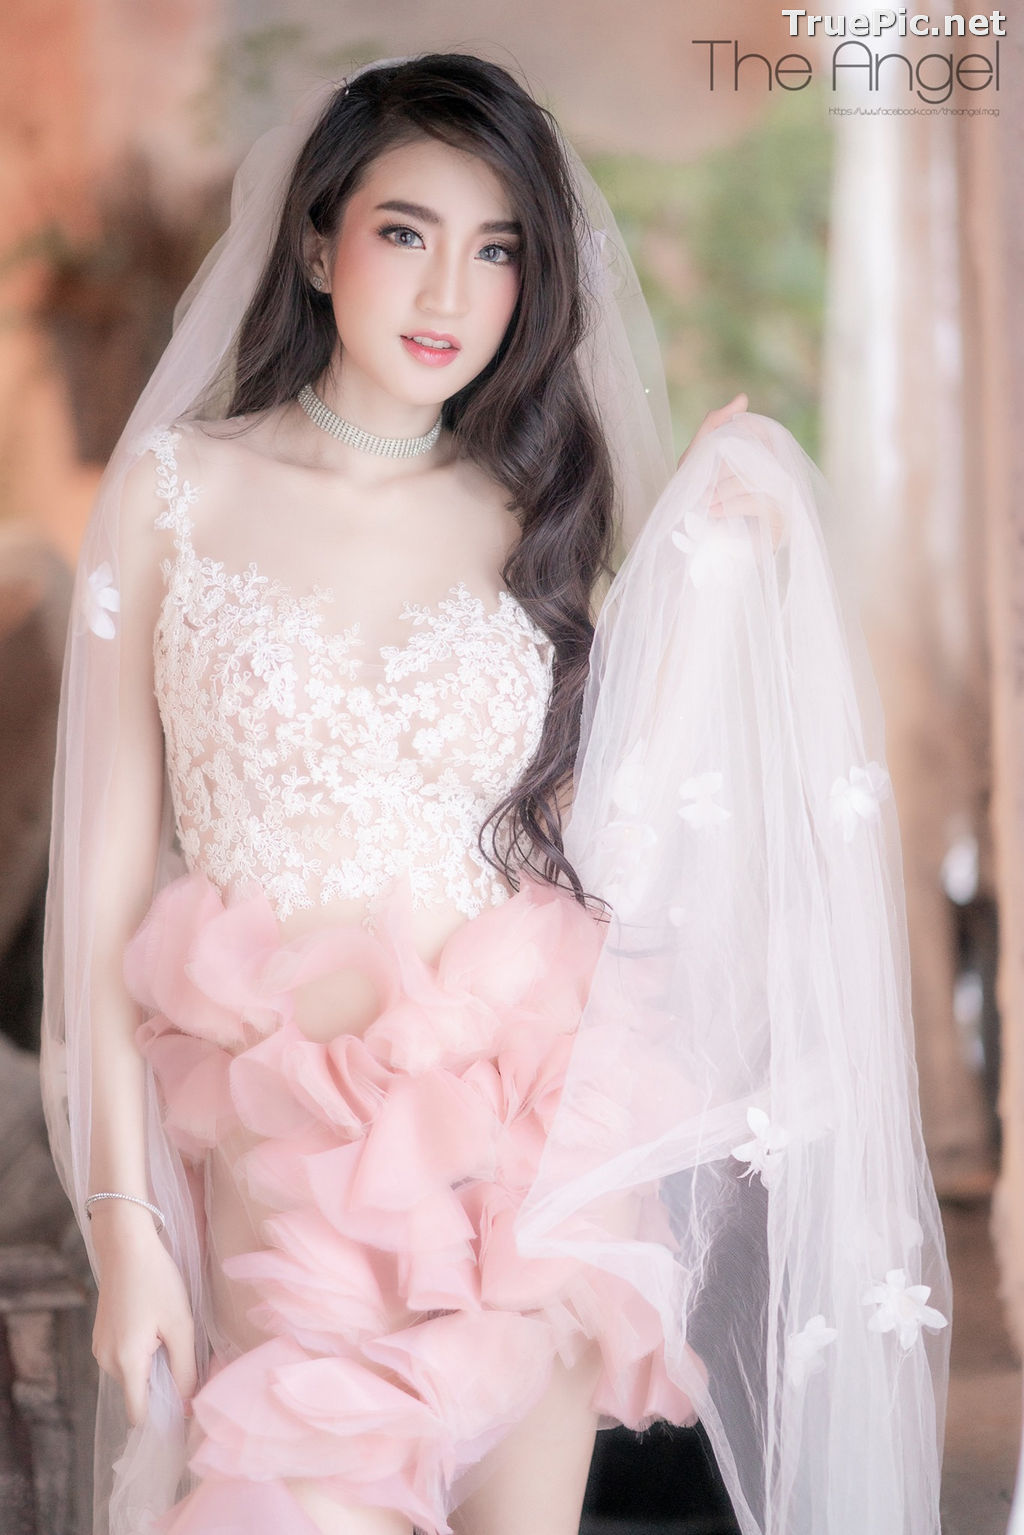 Image Thailand Model - Minggomut Maming Kongsawas - Beautiful Bride Concept - TruePic.net - Picture-3